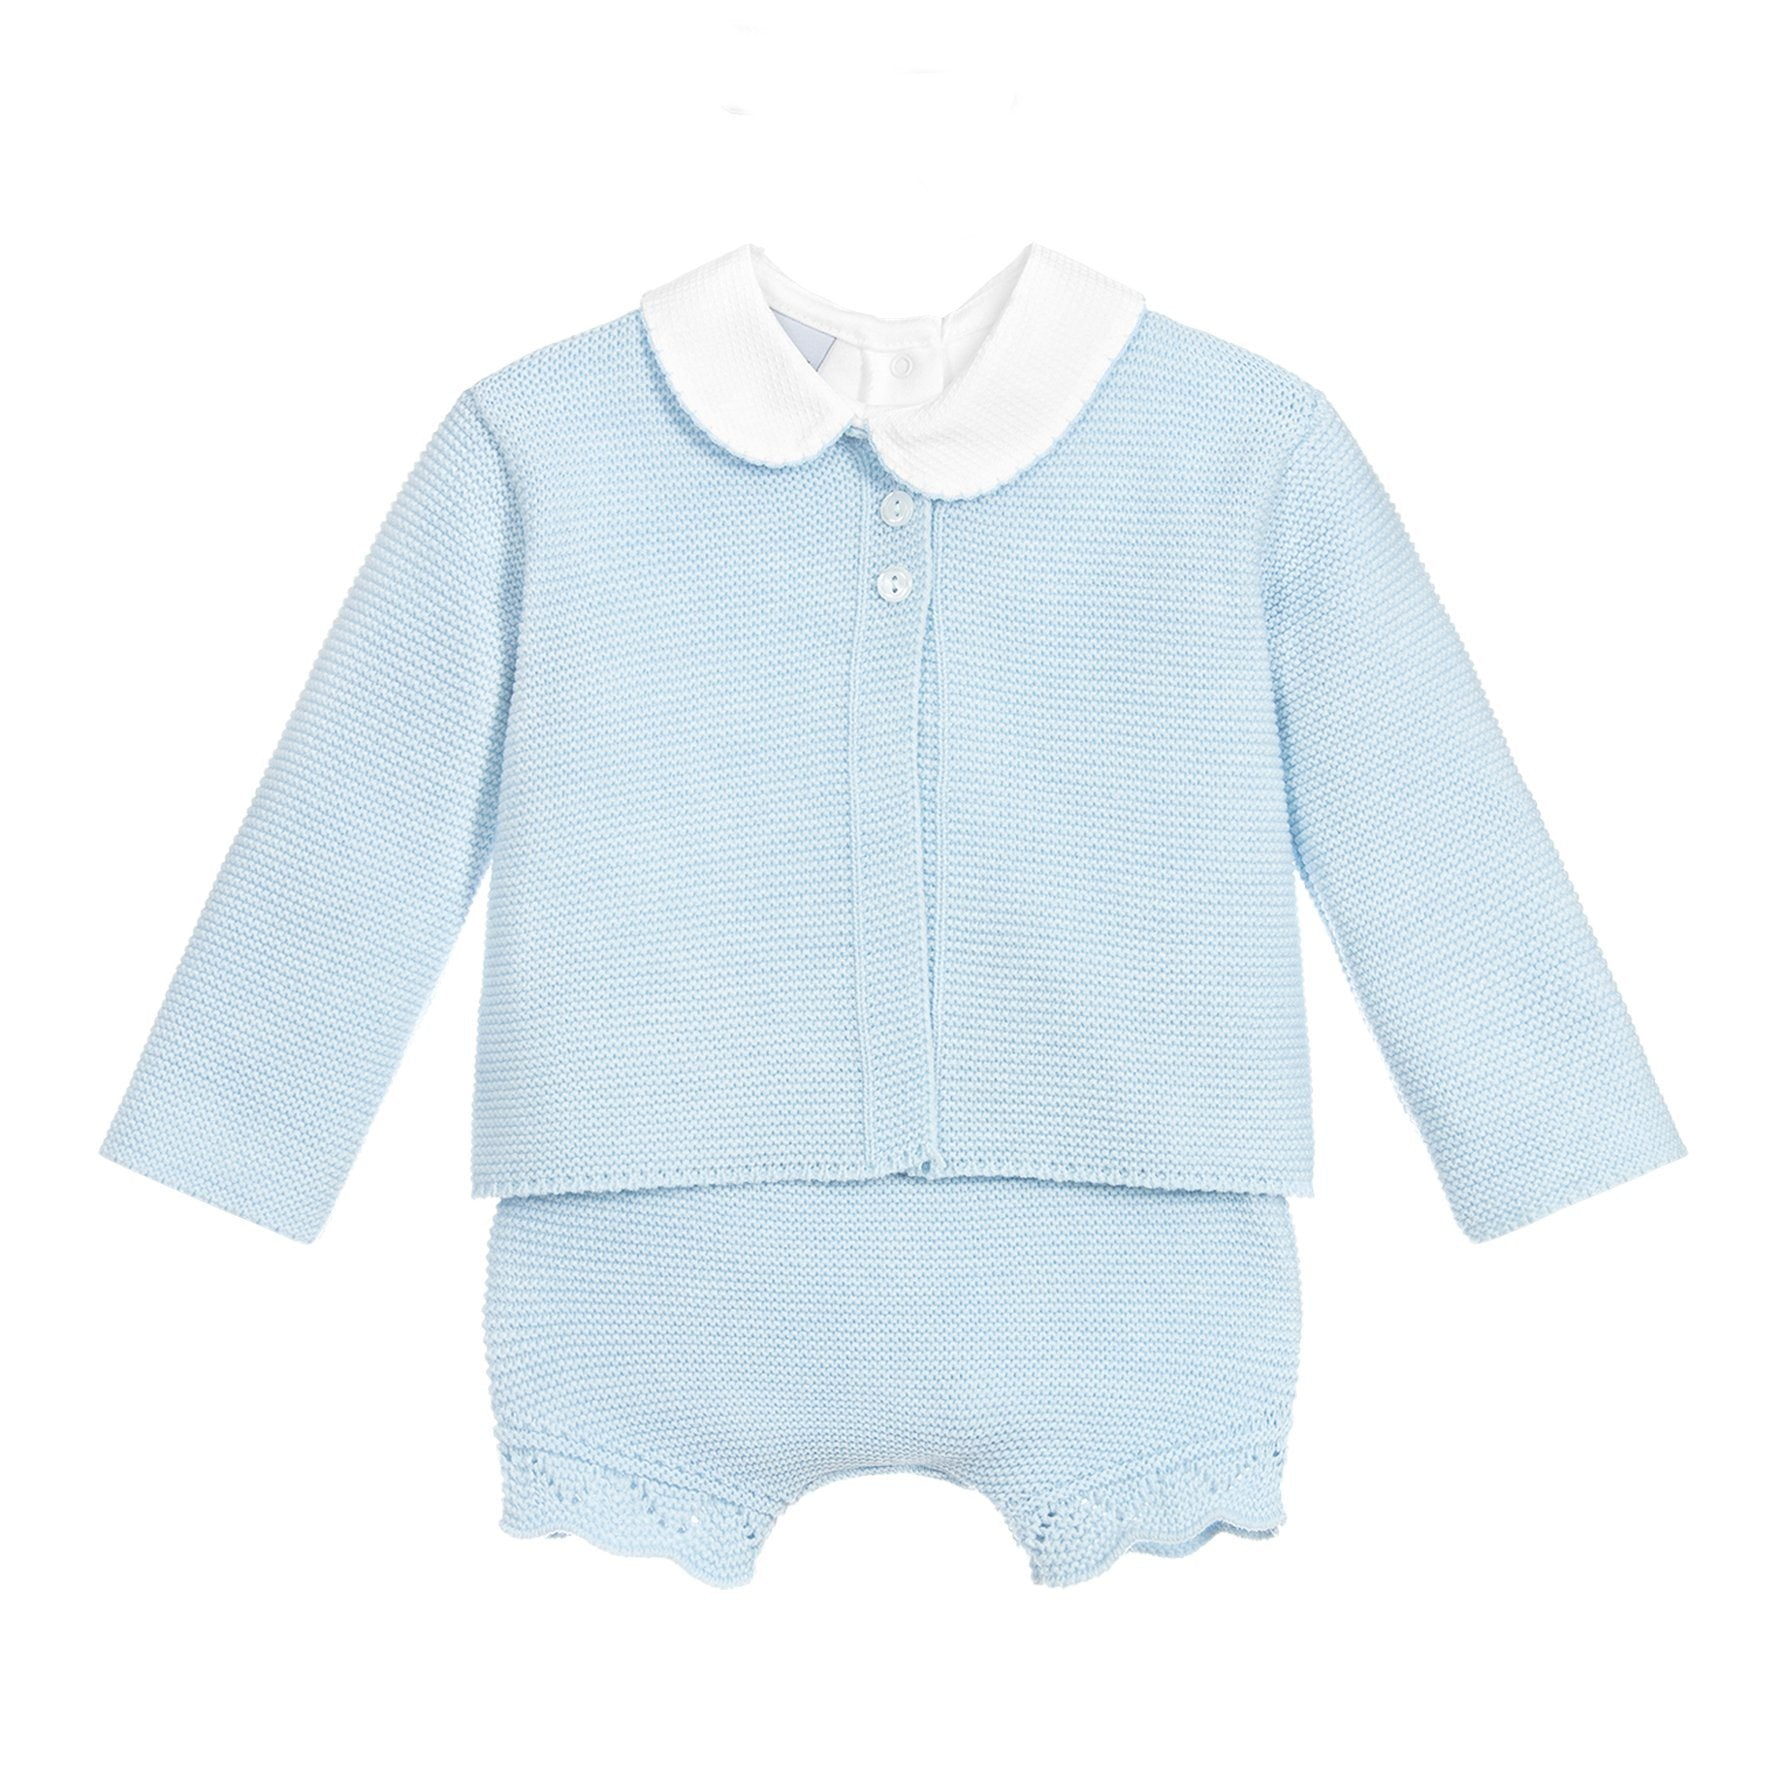 Sky Blue Knitted 3-Piece Set